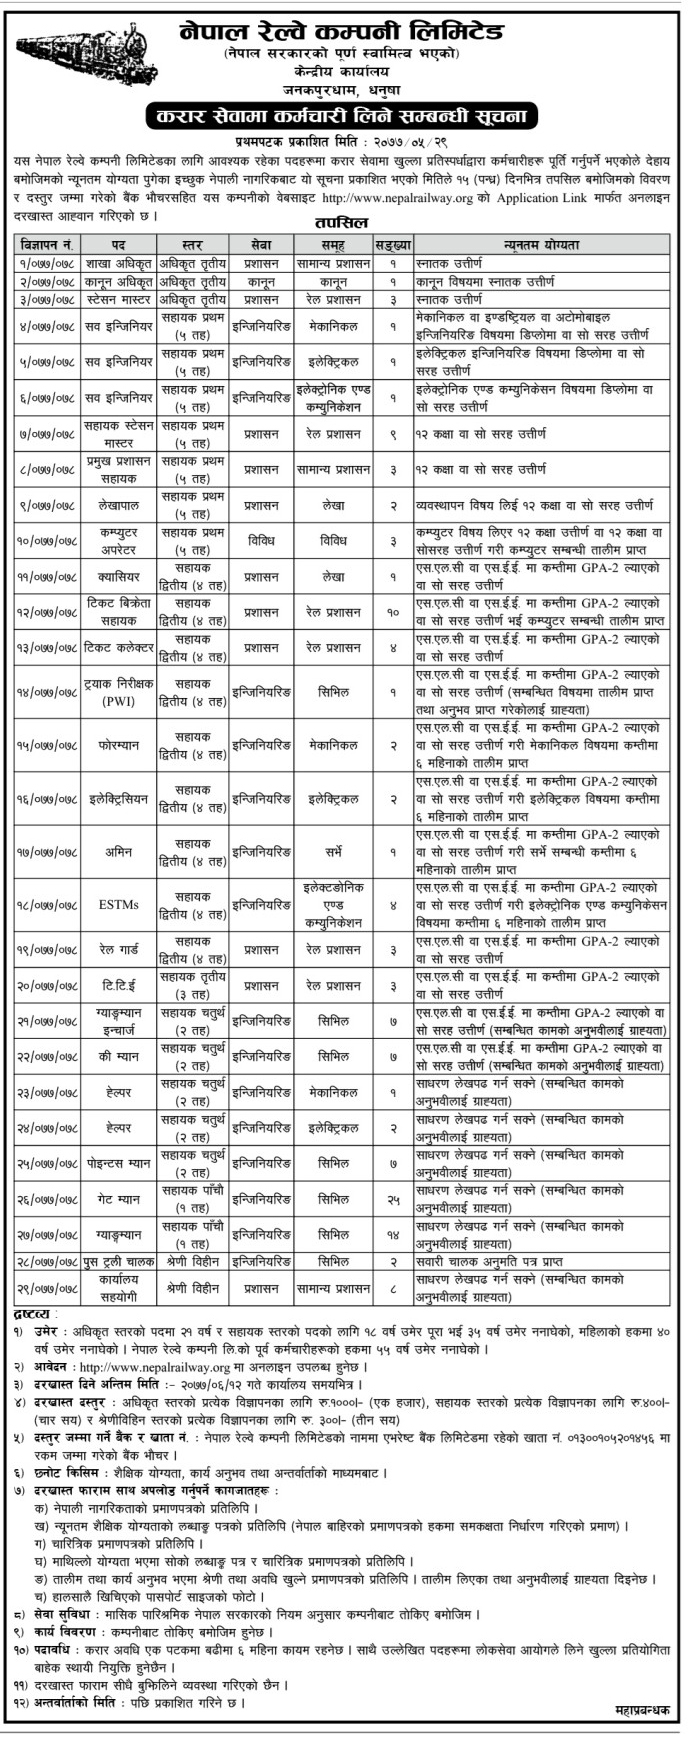 Nepal Railway Company Limited has Demanded Employees for Various Posts